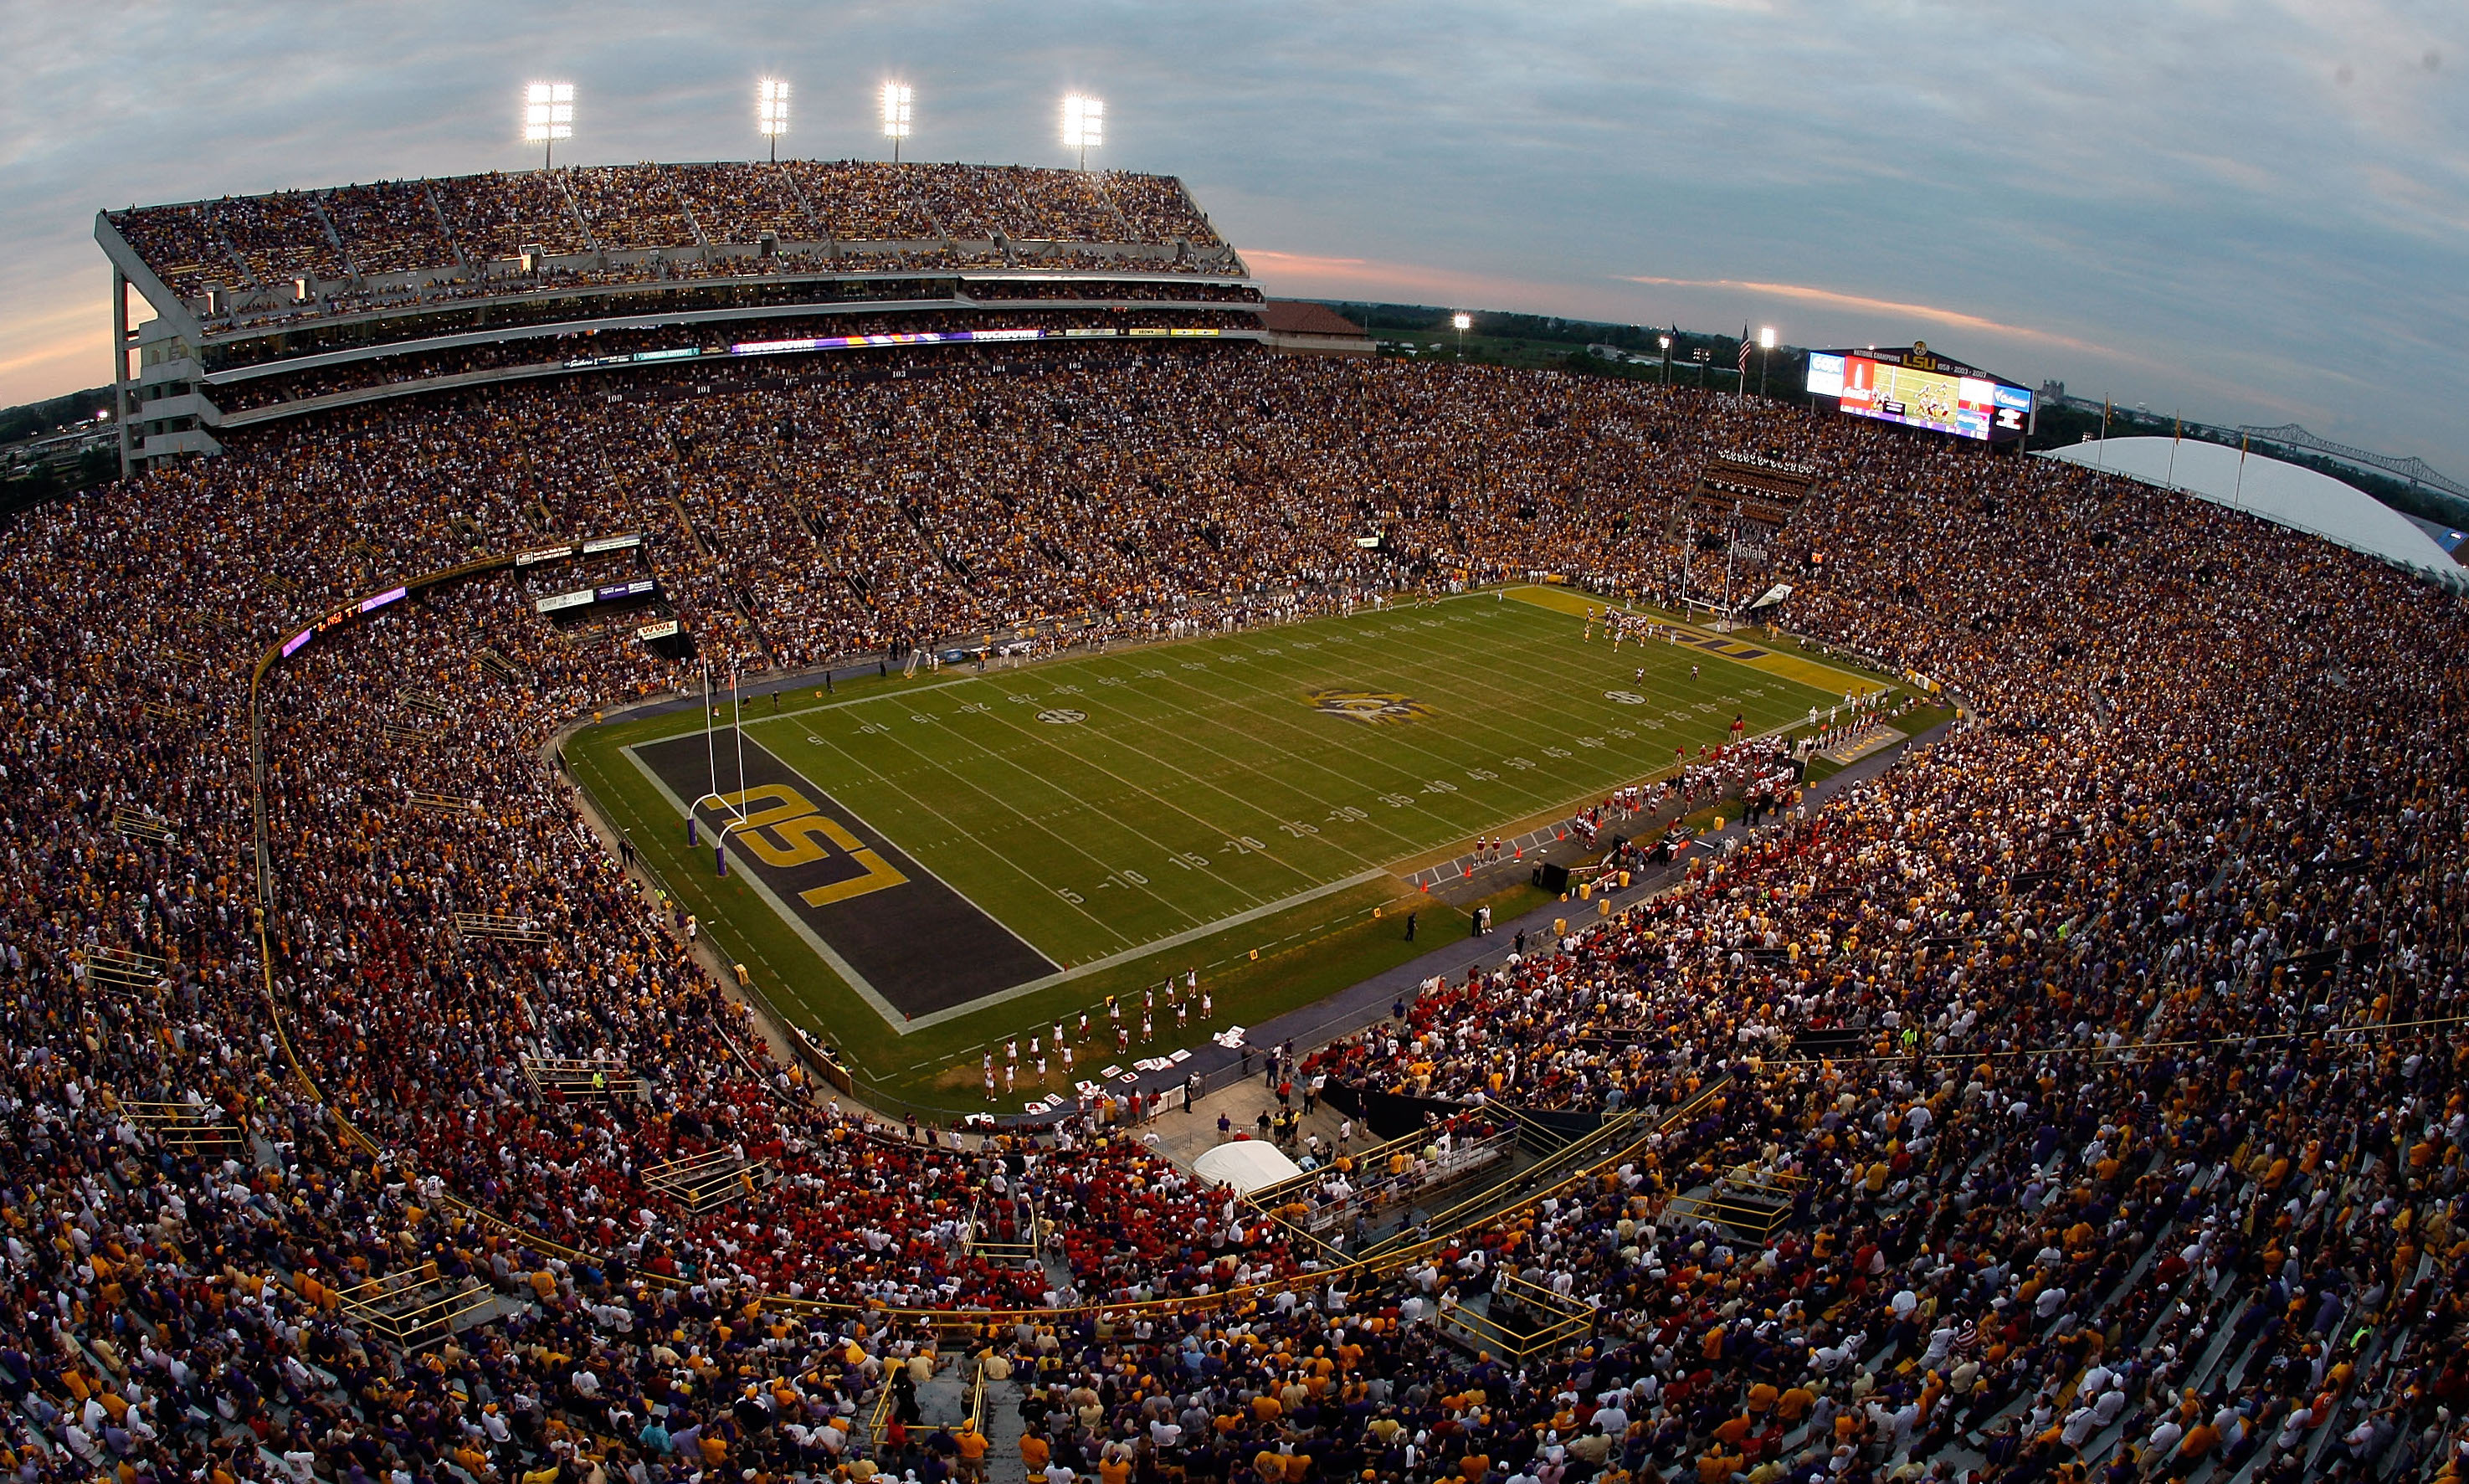 Man caught sneaking into Tiger Stadium with prostitute